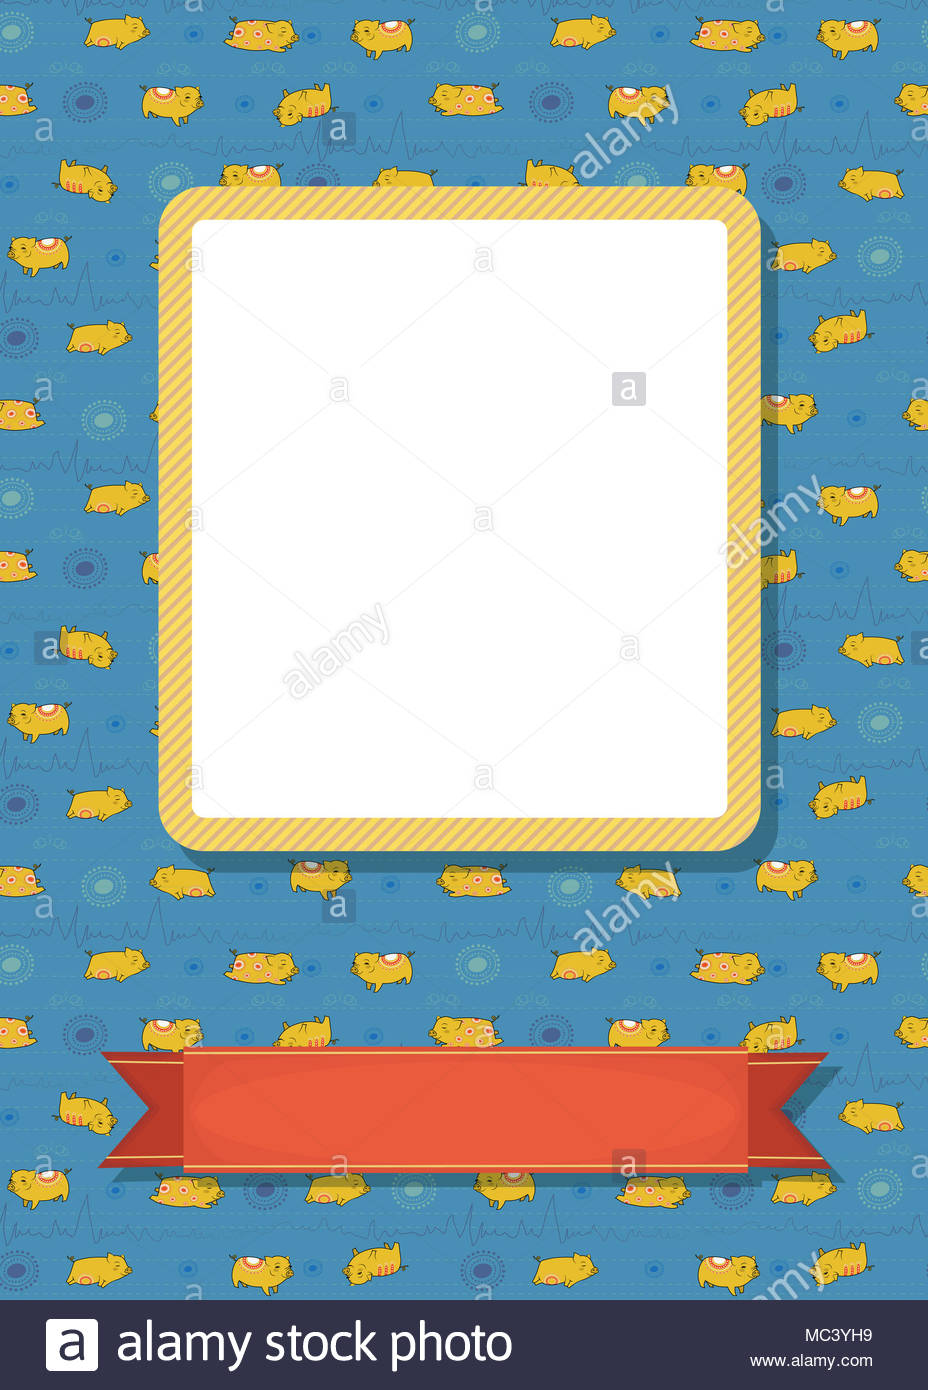 Funny Greeting Card Cartoon Yellow Pigs With Red Decor Yellow